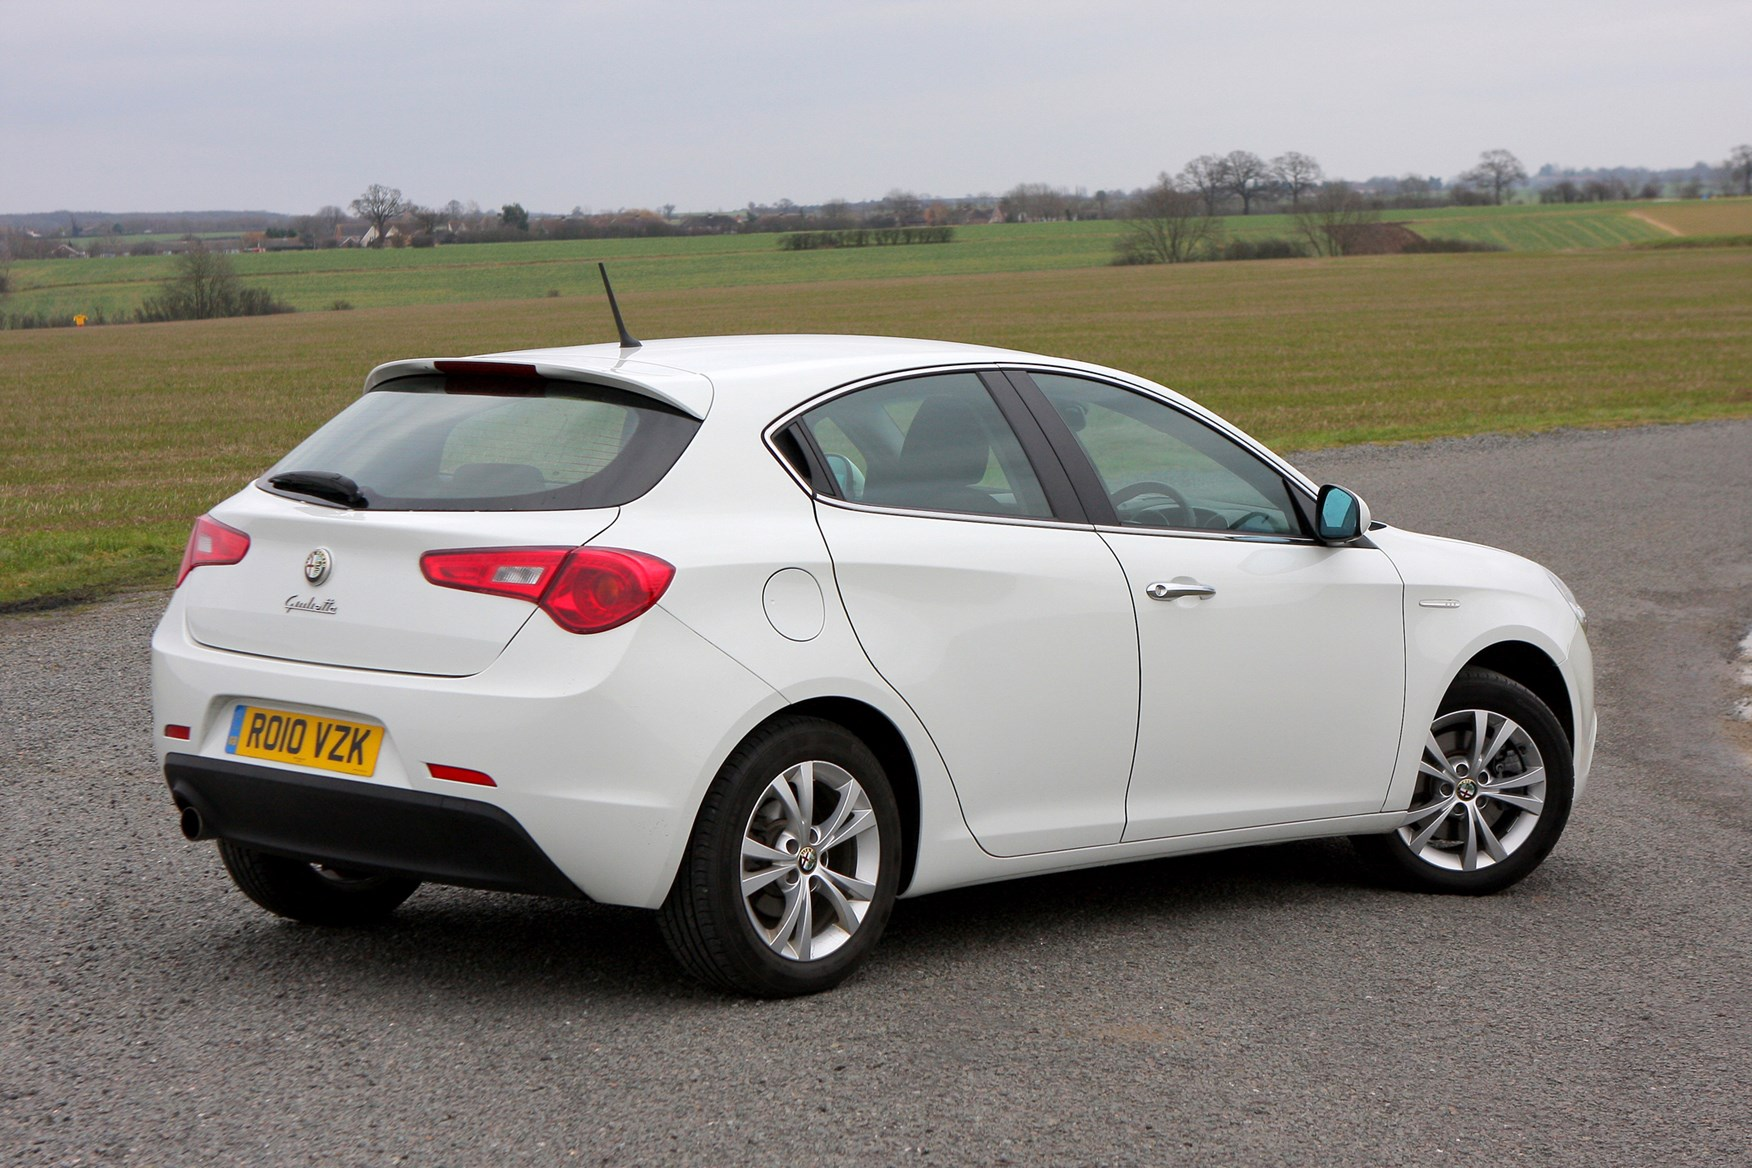 Alfa Romeo Giulietta Hatchback Review (2010 - ) | Parkers